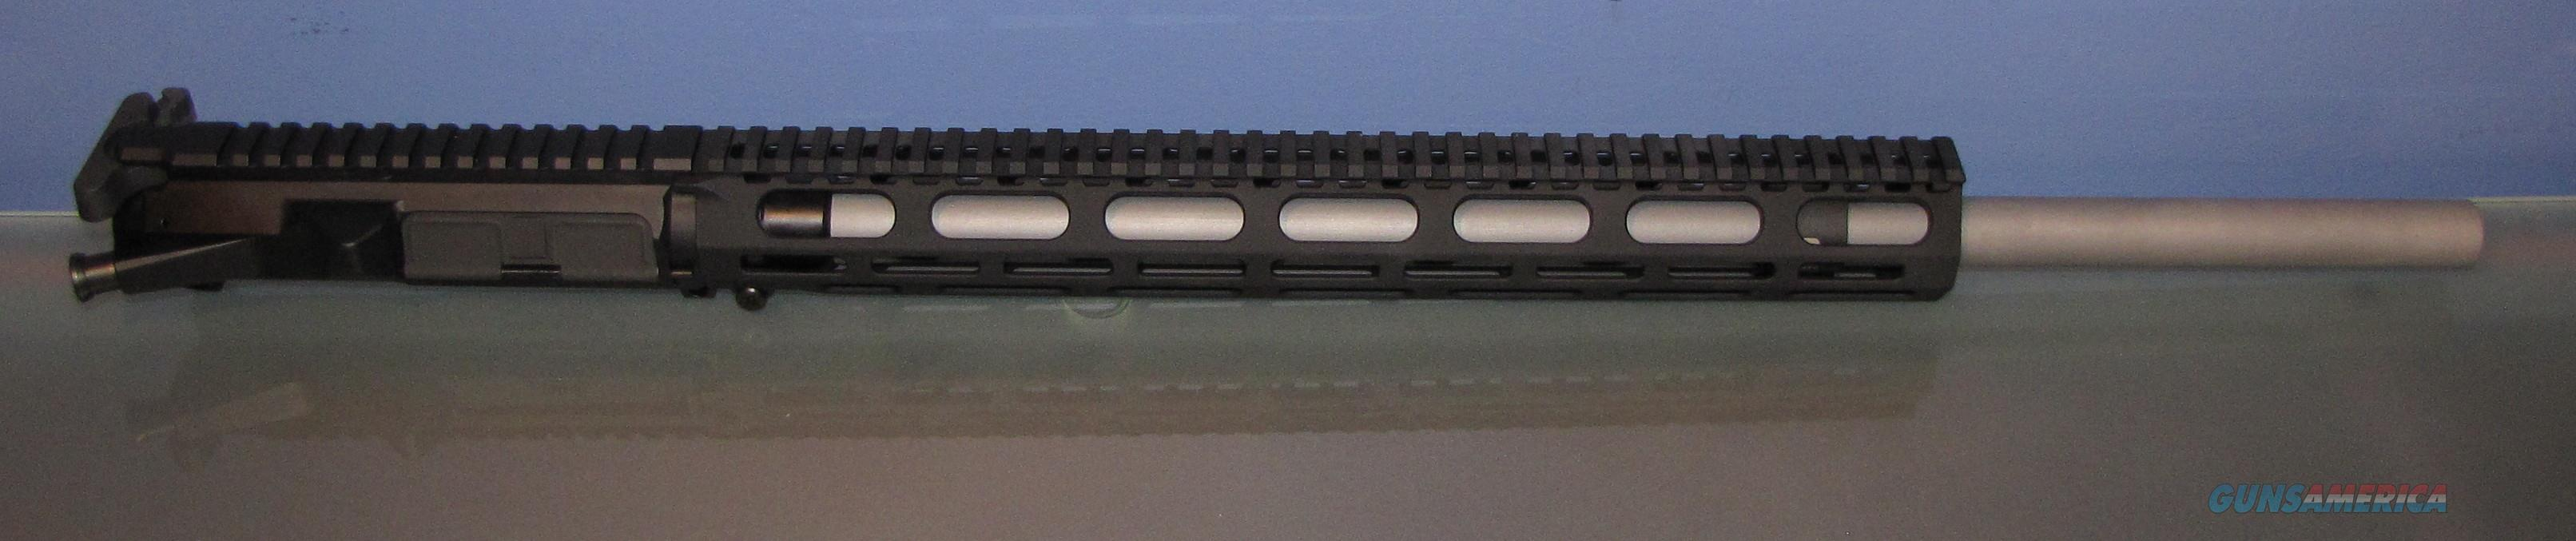 "B.T.A. ""OutLaw"" Billet Ultra Match 22"" 6.5 Grendel AR15 upper* CB Promo 10% OFF *  Non-Guns > Gun Parts > M16-AR15 > Upper Only"